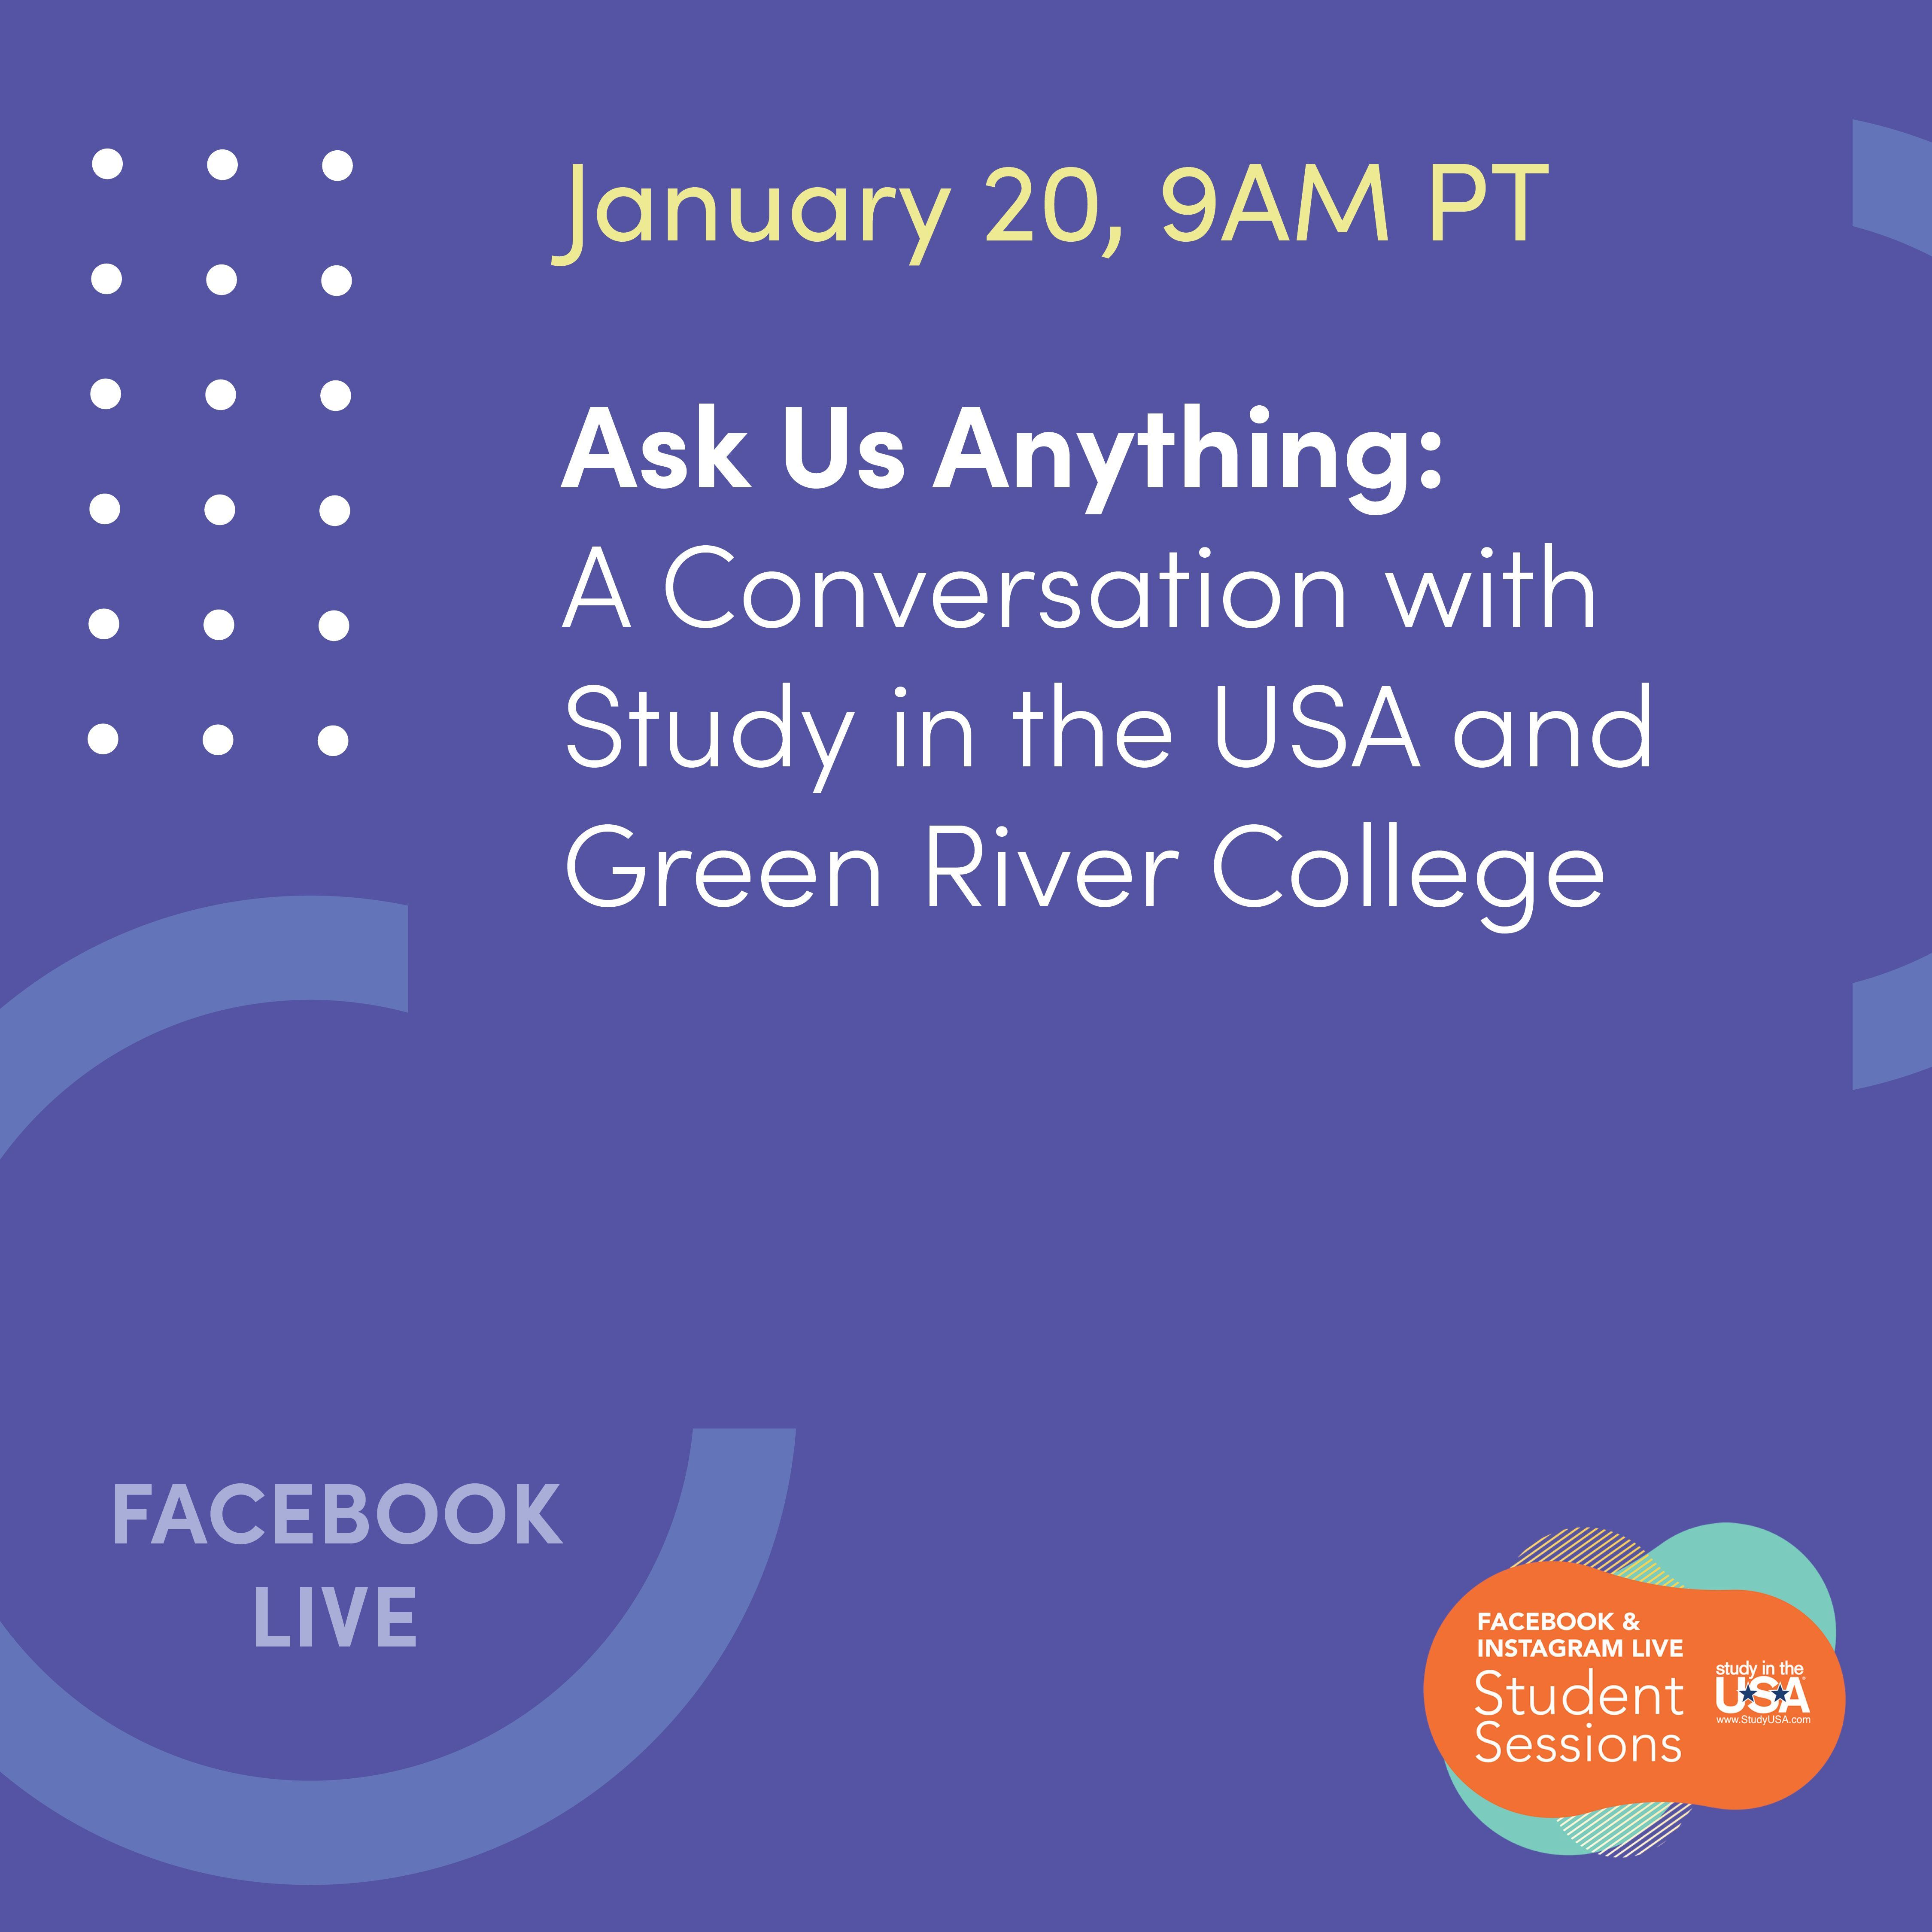 Hello Students Join Us On January 20 At 9 Am Pt On Study In The Usa Facebook Live Ask Us Anything With Green River College In 2021 Student Study Green River